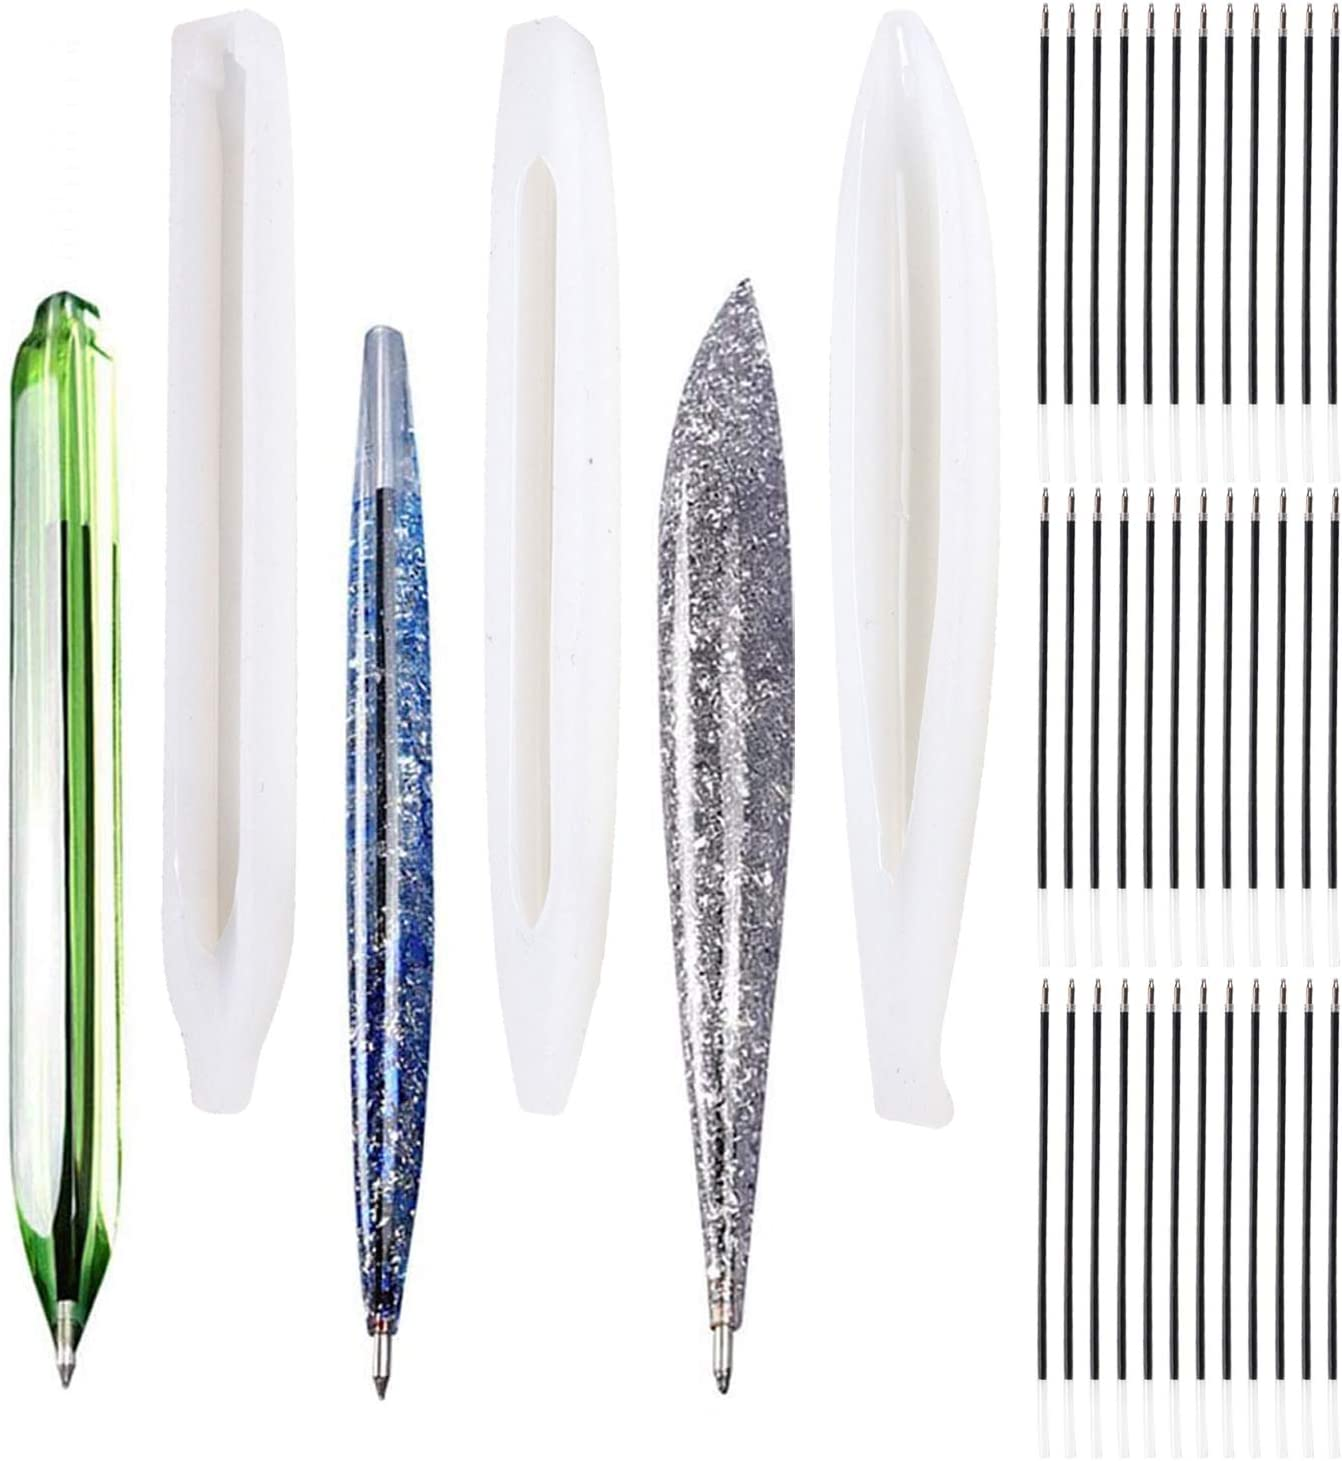 6 Pieces Pen Shape Resin Molds Cylinder Shaped Epoxy Casting Molds Ballpoint Pen Silicone Molds for DIY Pen Candle with 75 Pieces Ballpoint Refill Pens for Teacher Student Gift